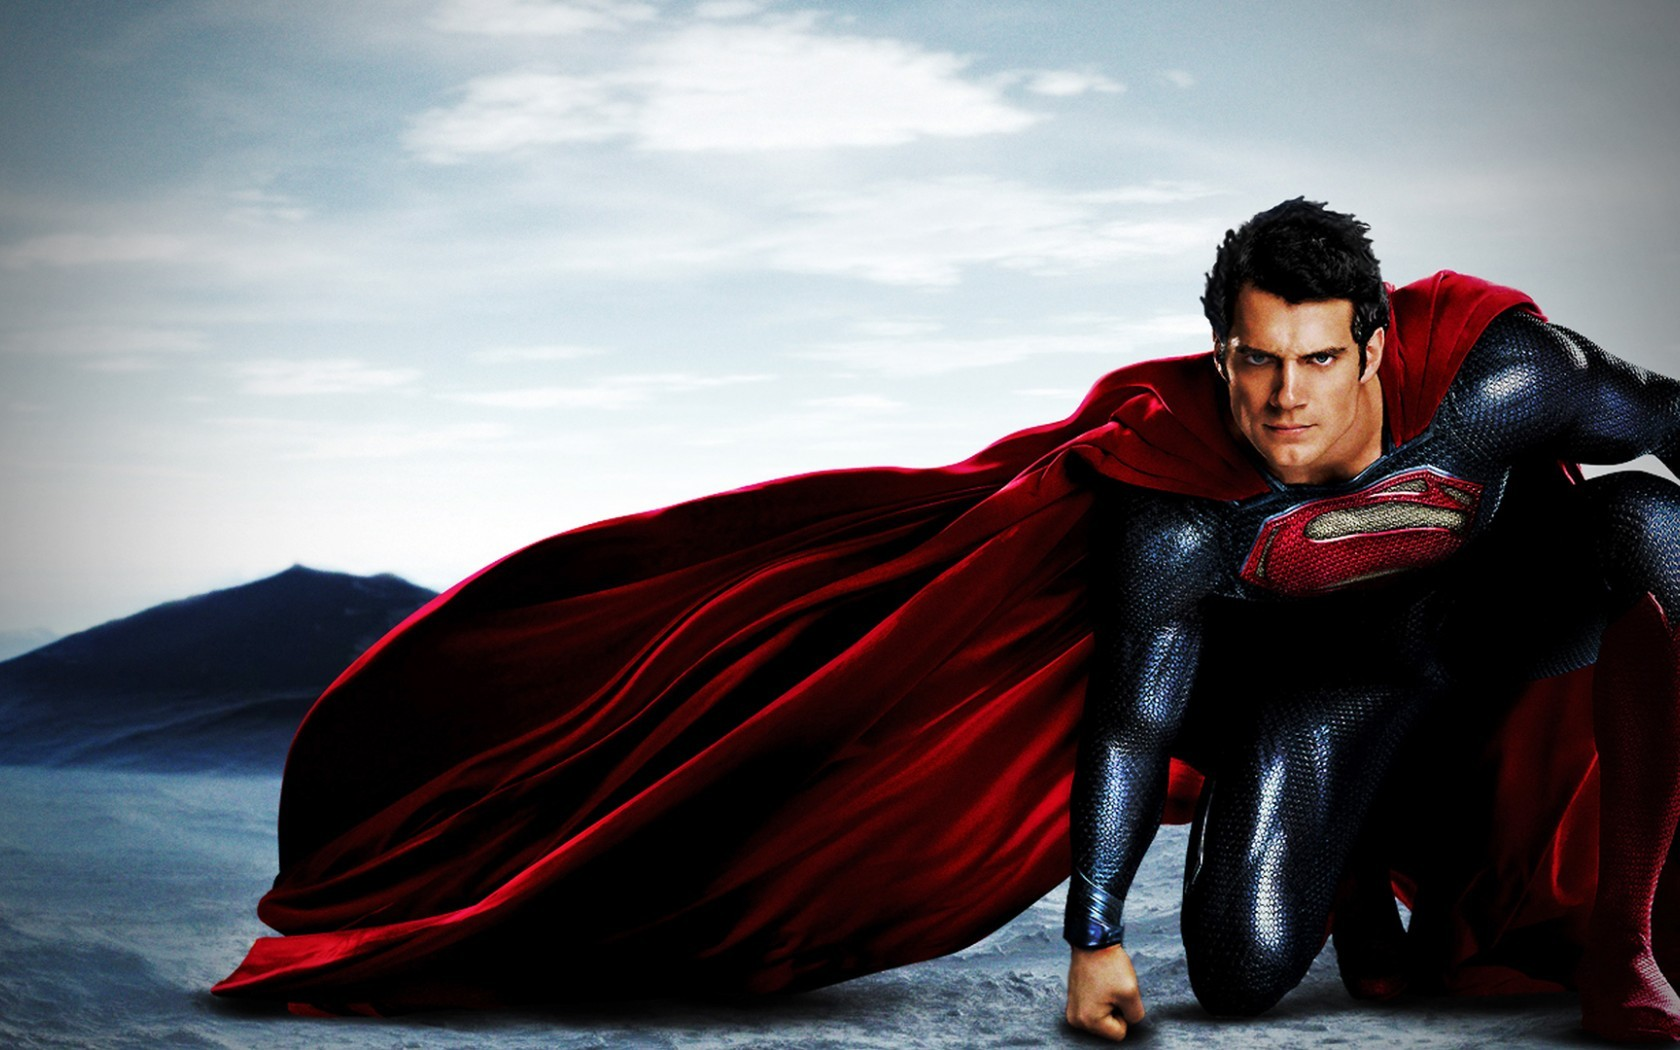 Henry Cavill Superman Man of Steel HD Wallpaper 3882 1680x1050